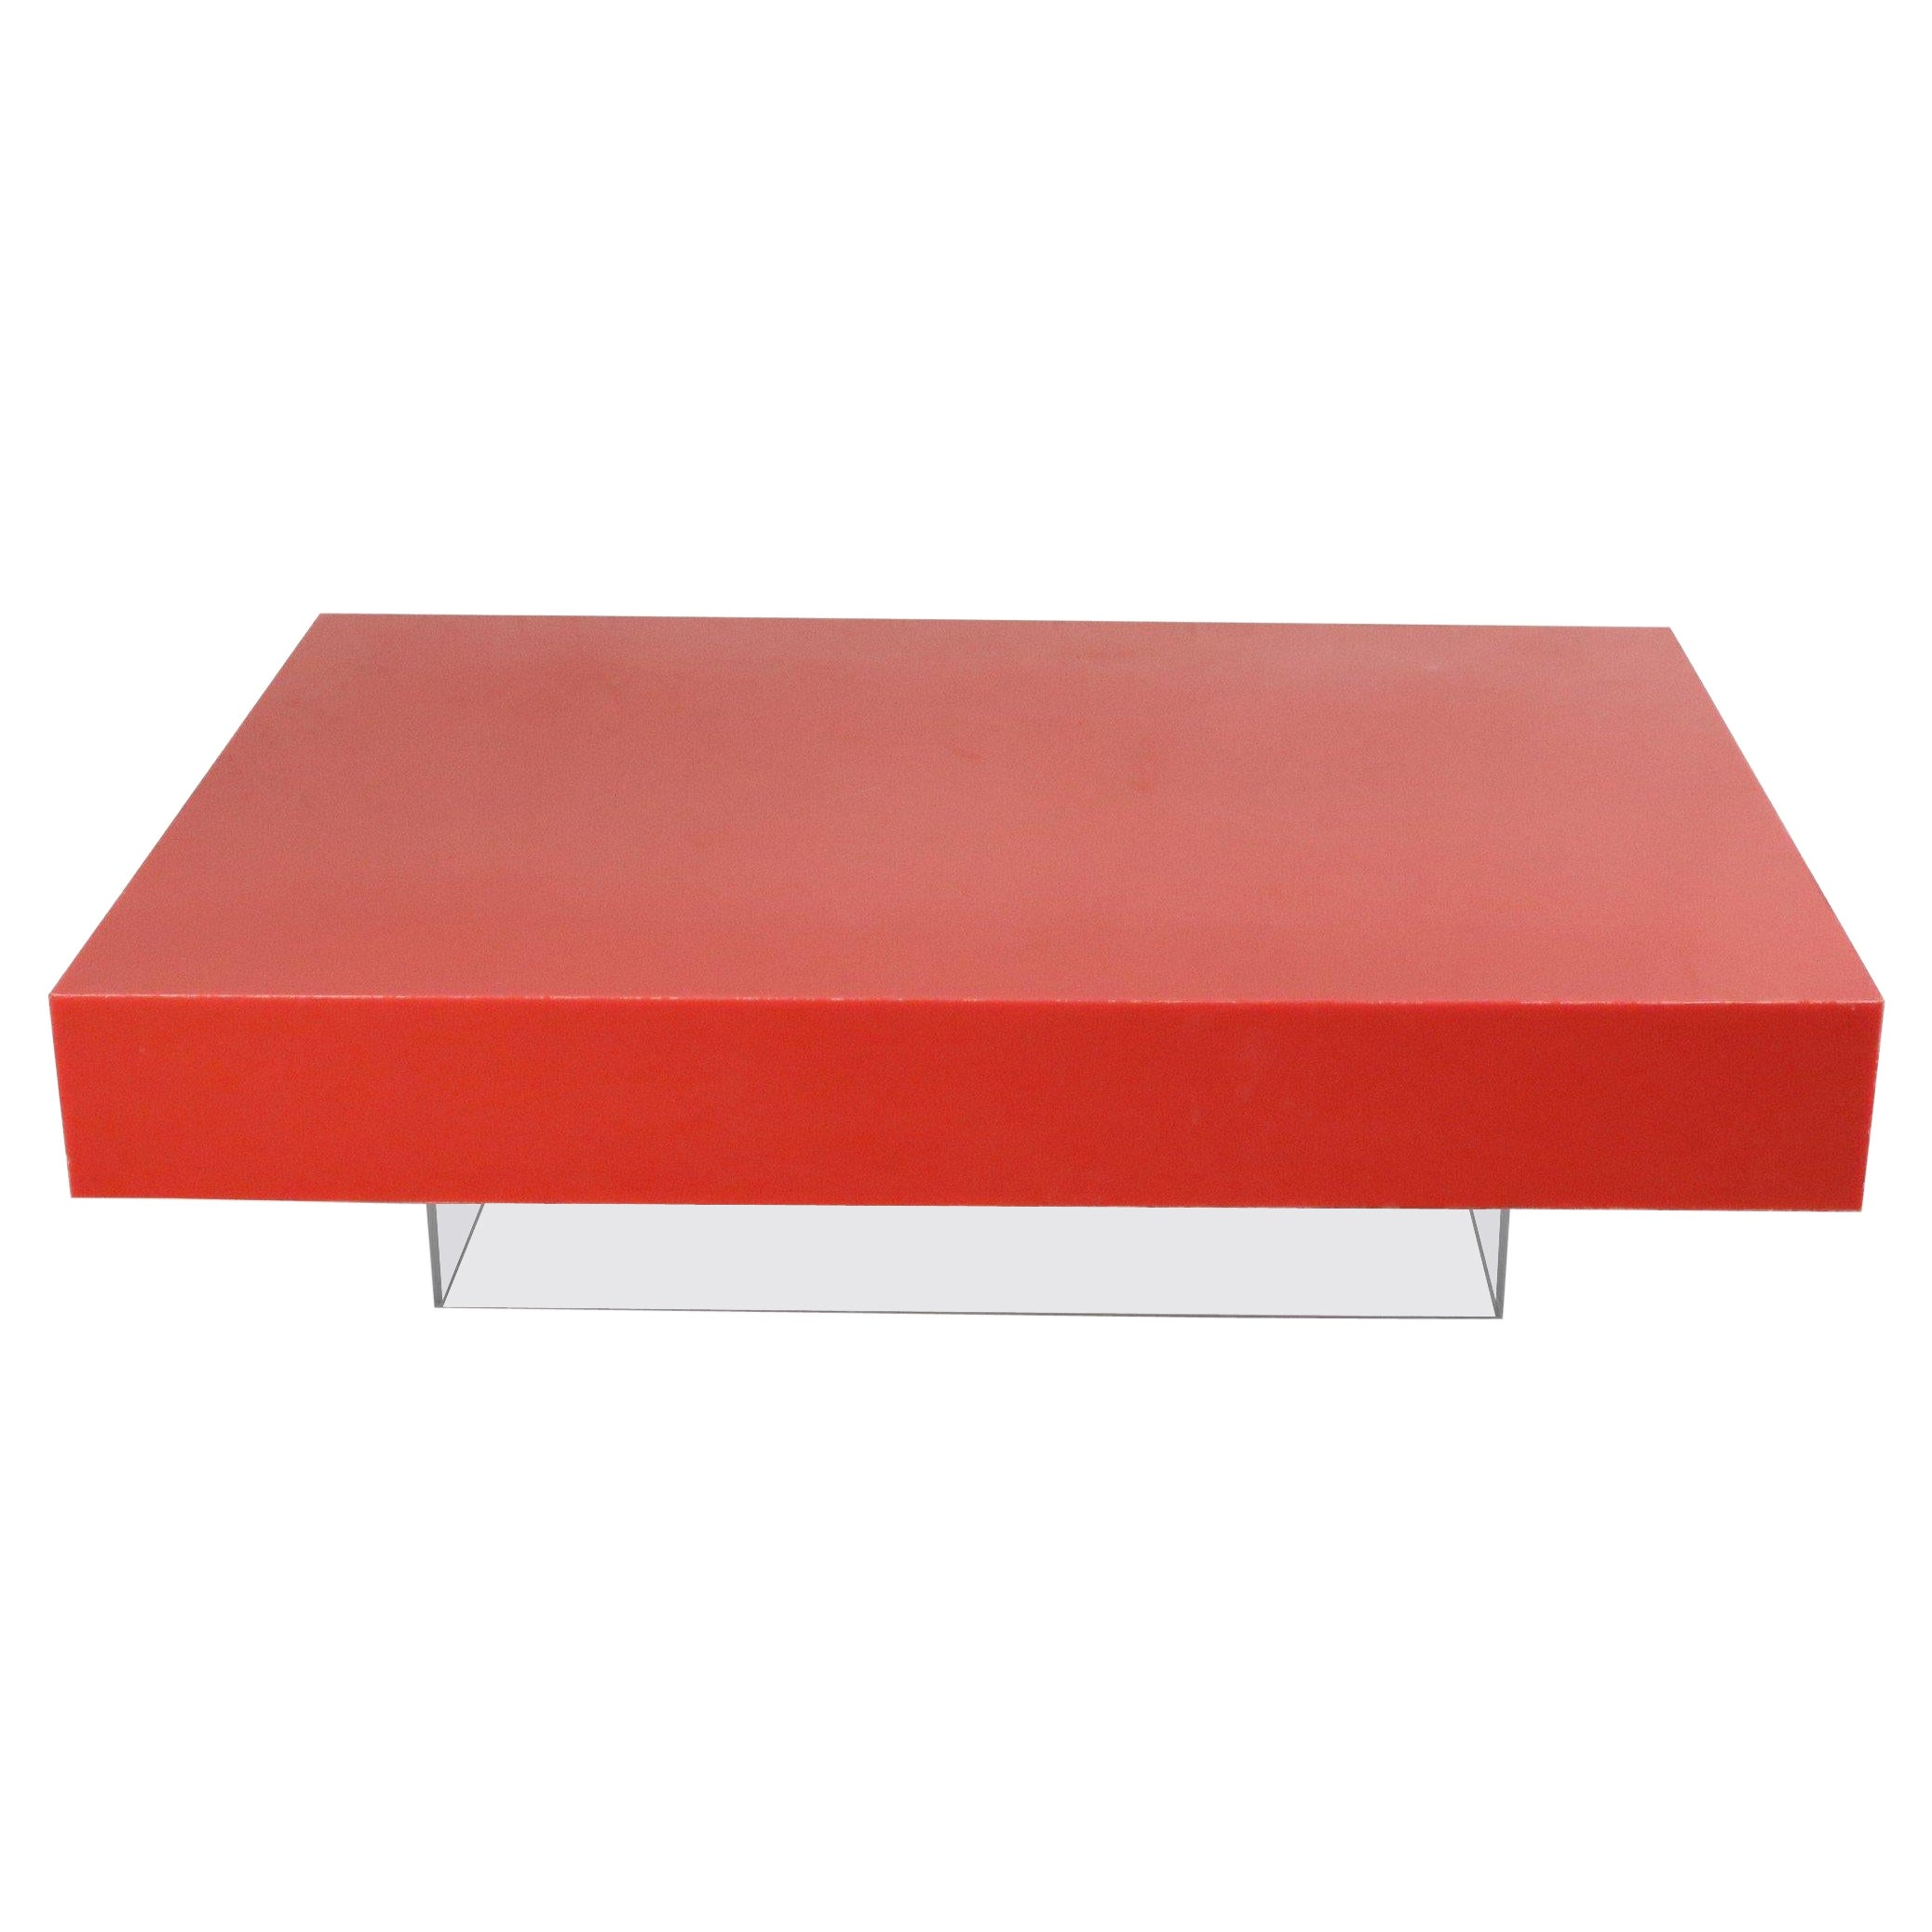 Contemporary Modernist Red Lacquer and Lucite Low Coffee Table